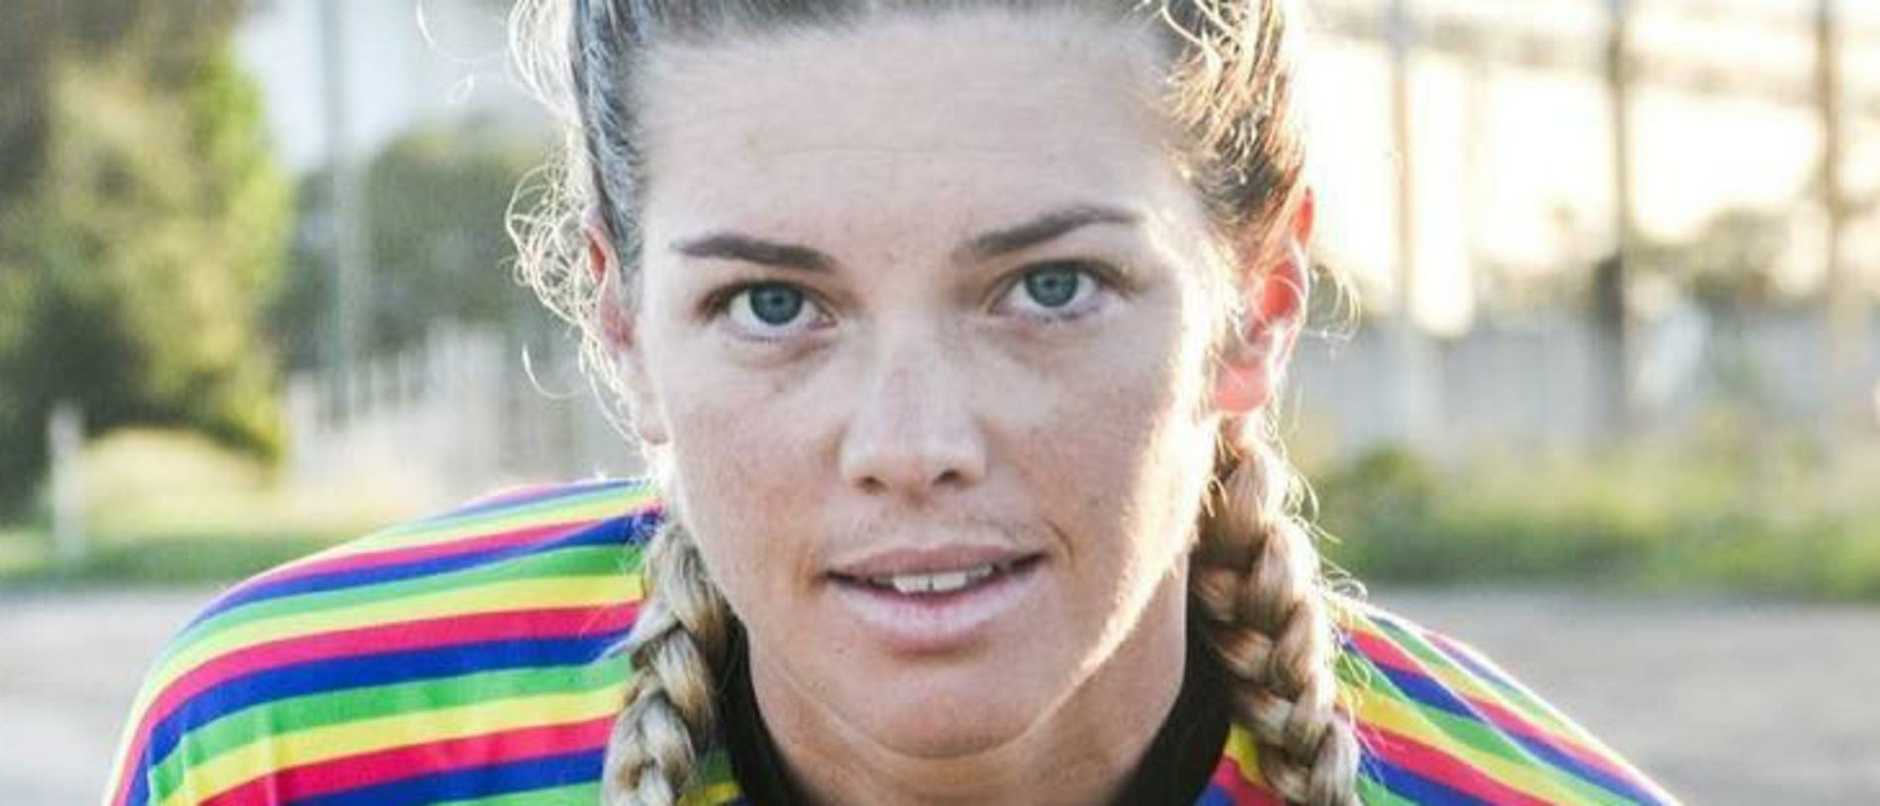 An unhappy customer copped a spray from a popular cycling gear company after leaving a scathing online review.